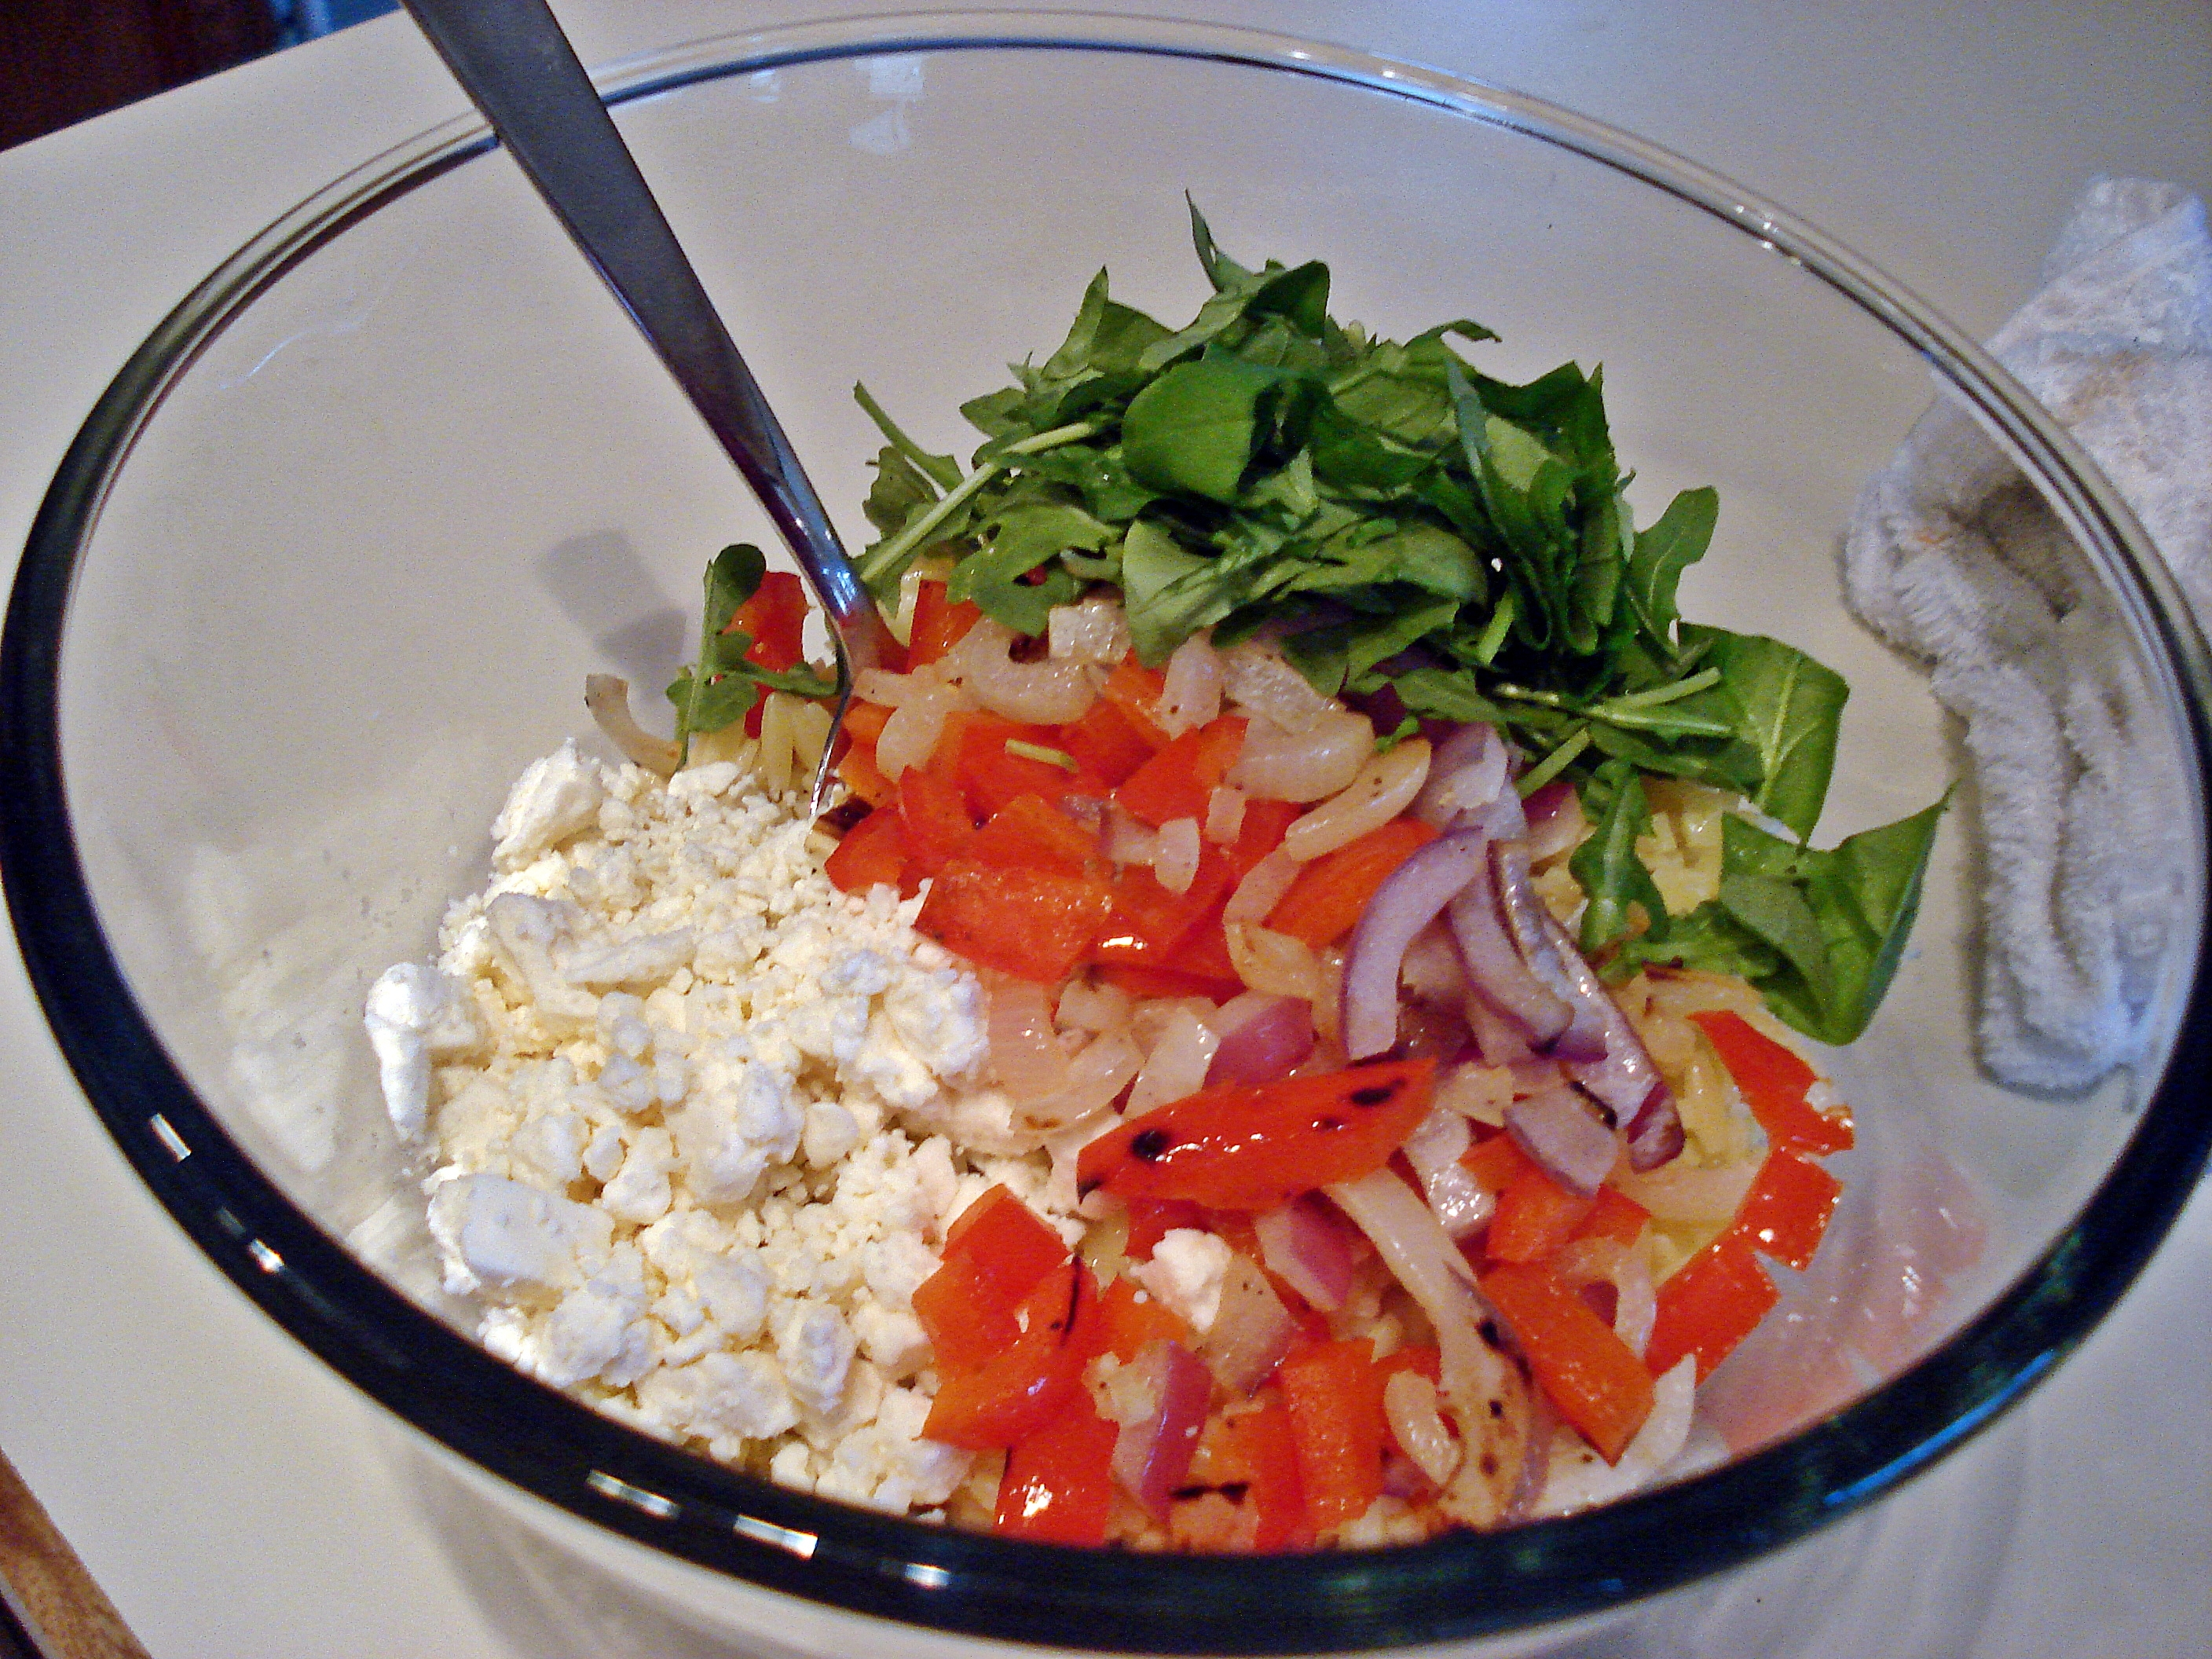 grilled red onions & red peppers, feta cheese, basil, and arugula